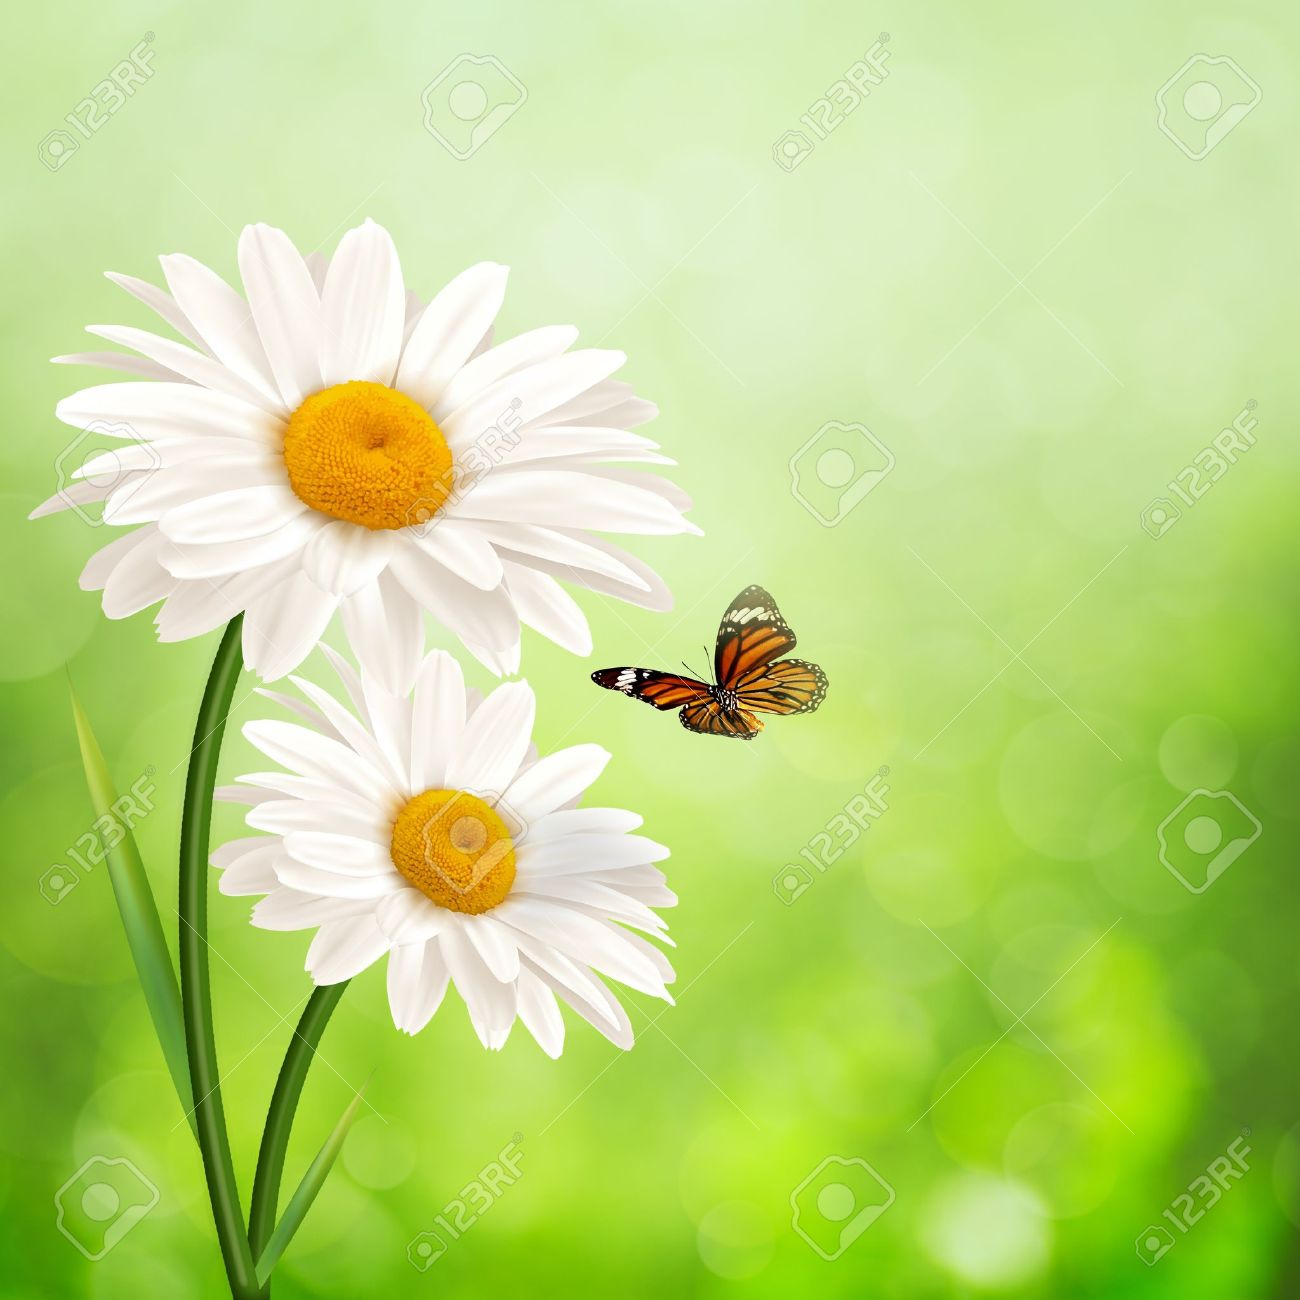 Happy meadow. Abstract summer backgrounds with daisy flowers - 18702159